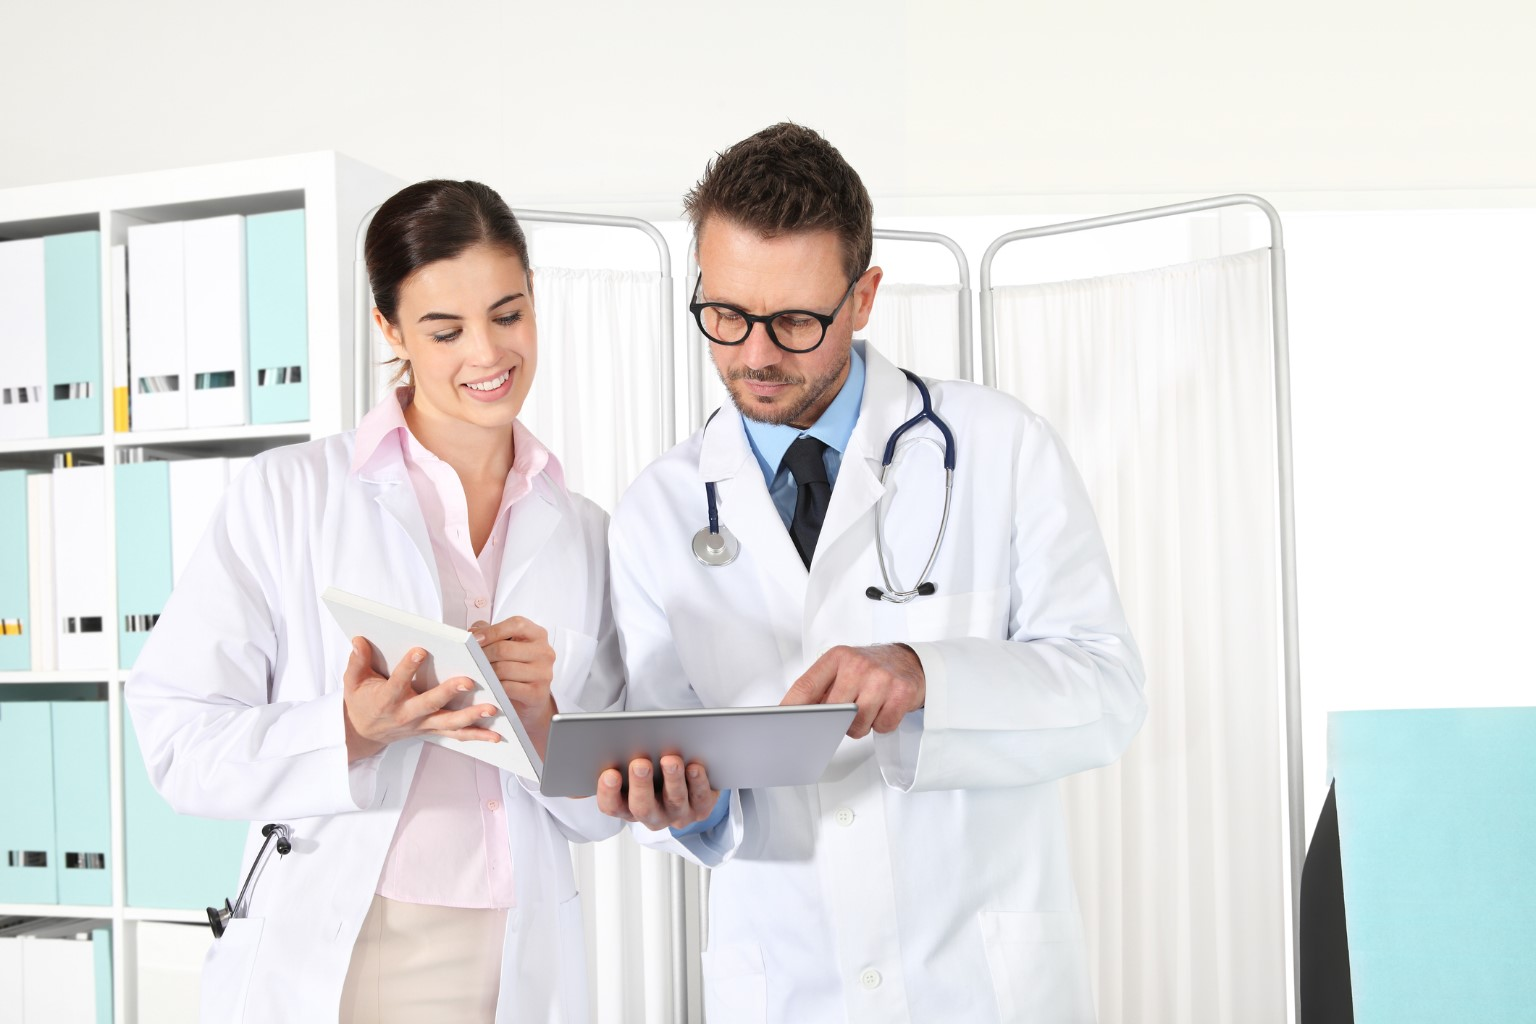 HL-Insights Doctors-using-a-tablet-concept-of-medical-consulting